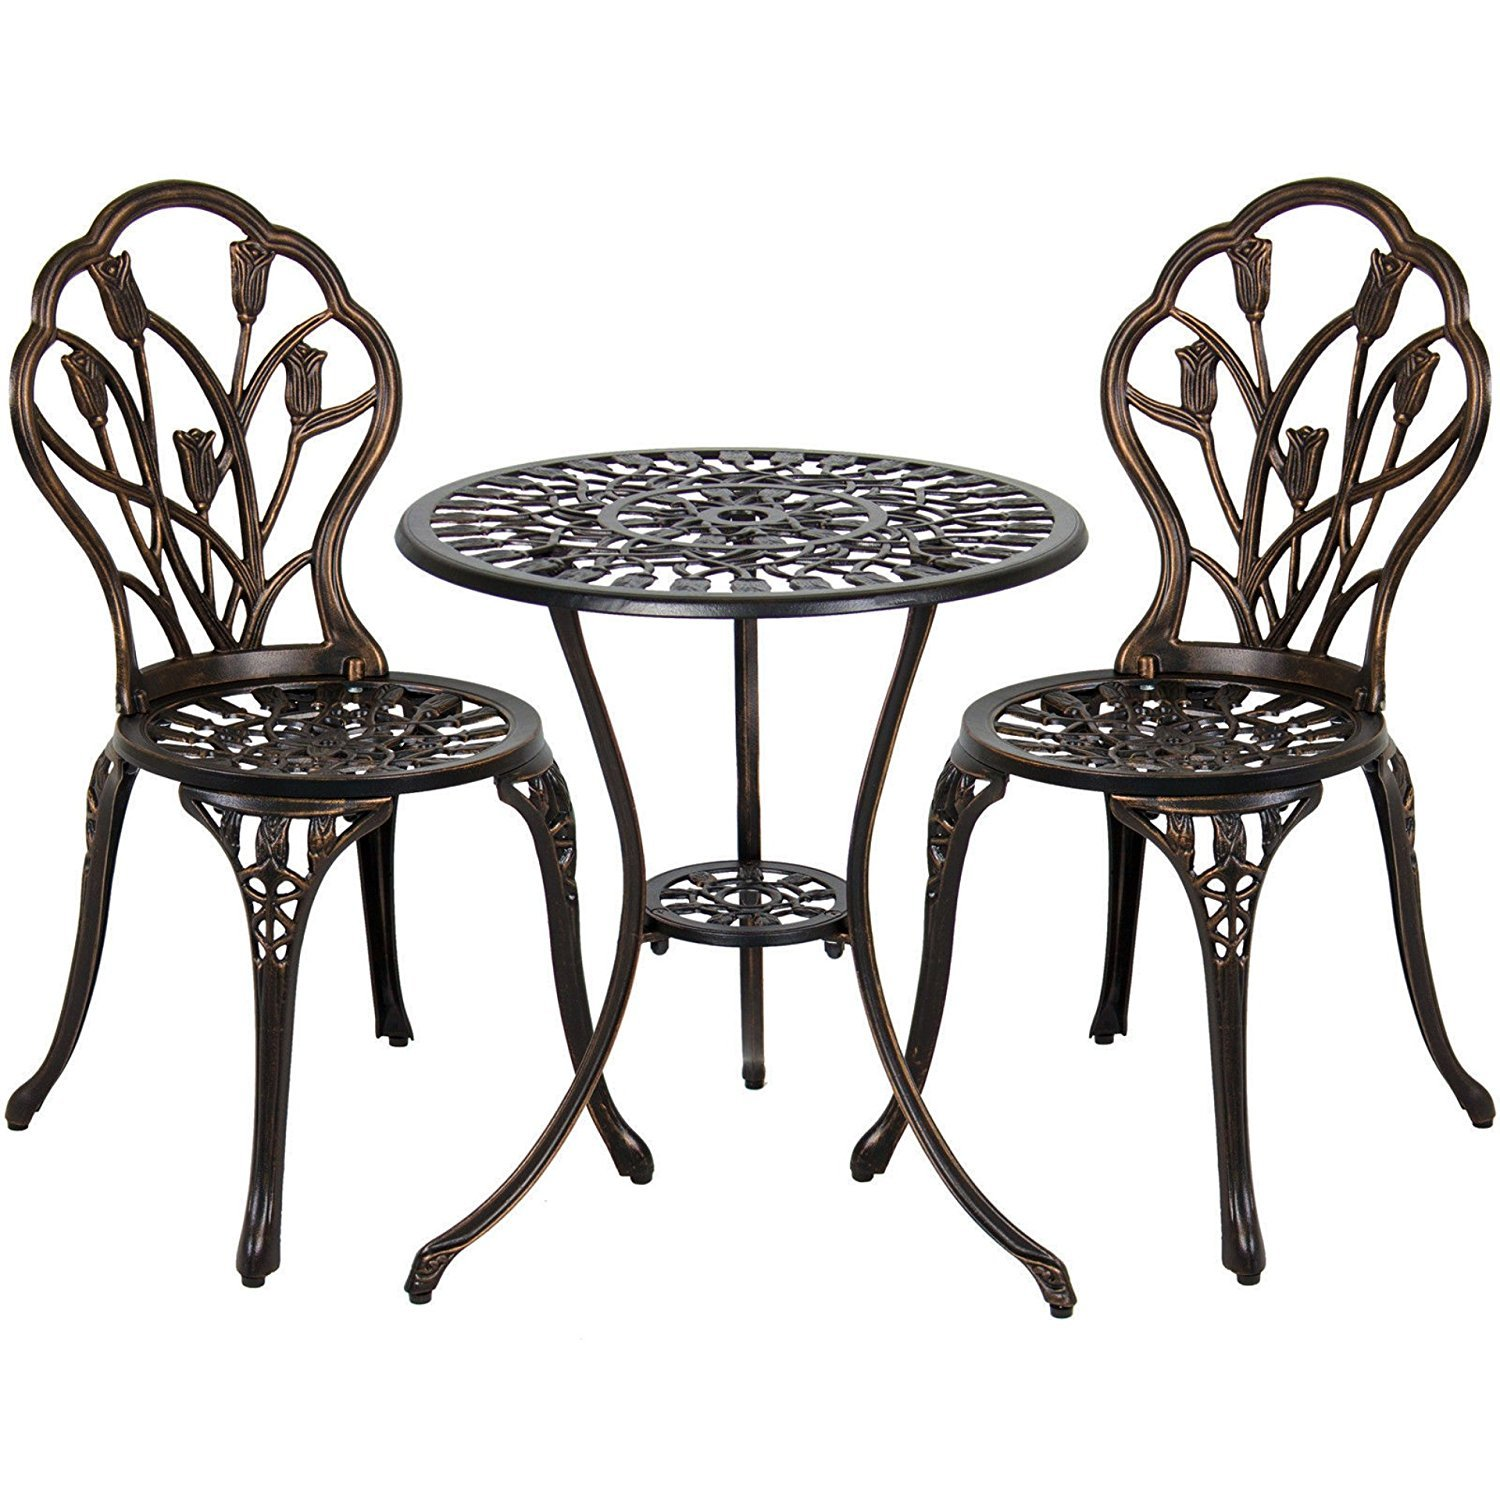 Vanteriam Outdoor Patio Furniture Cast Aluminum 3 Piece Bistro Set in Bronze- Two Chairs and One Table w/Umbrella Hole (Tulip Design)